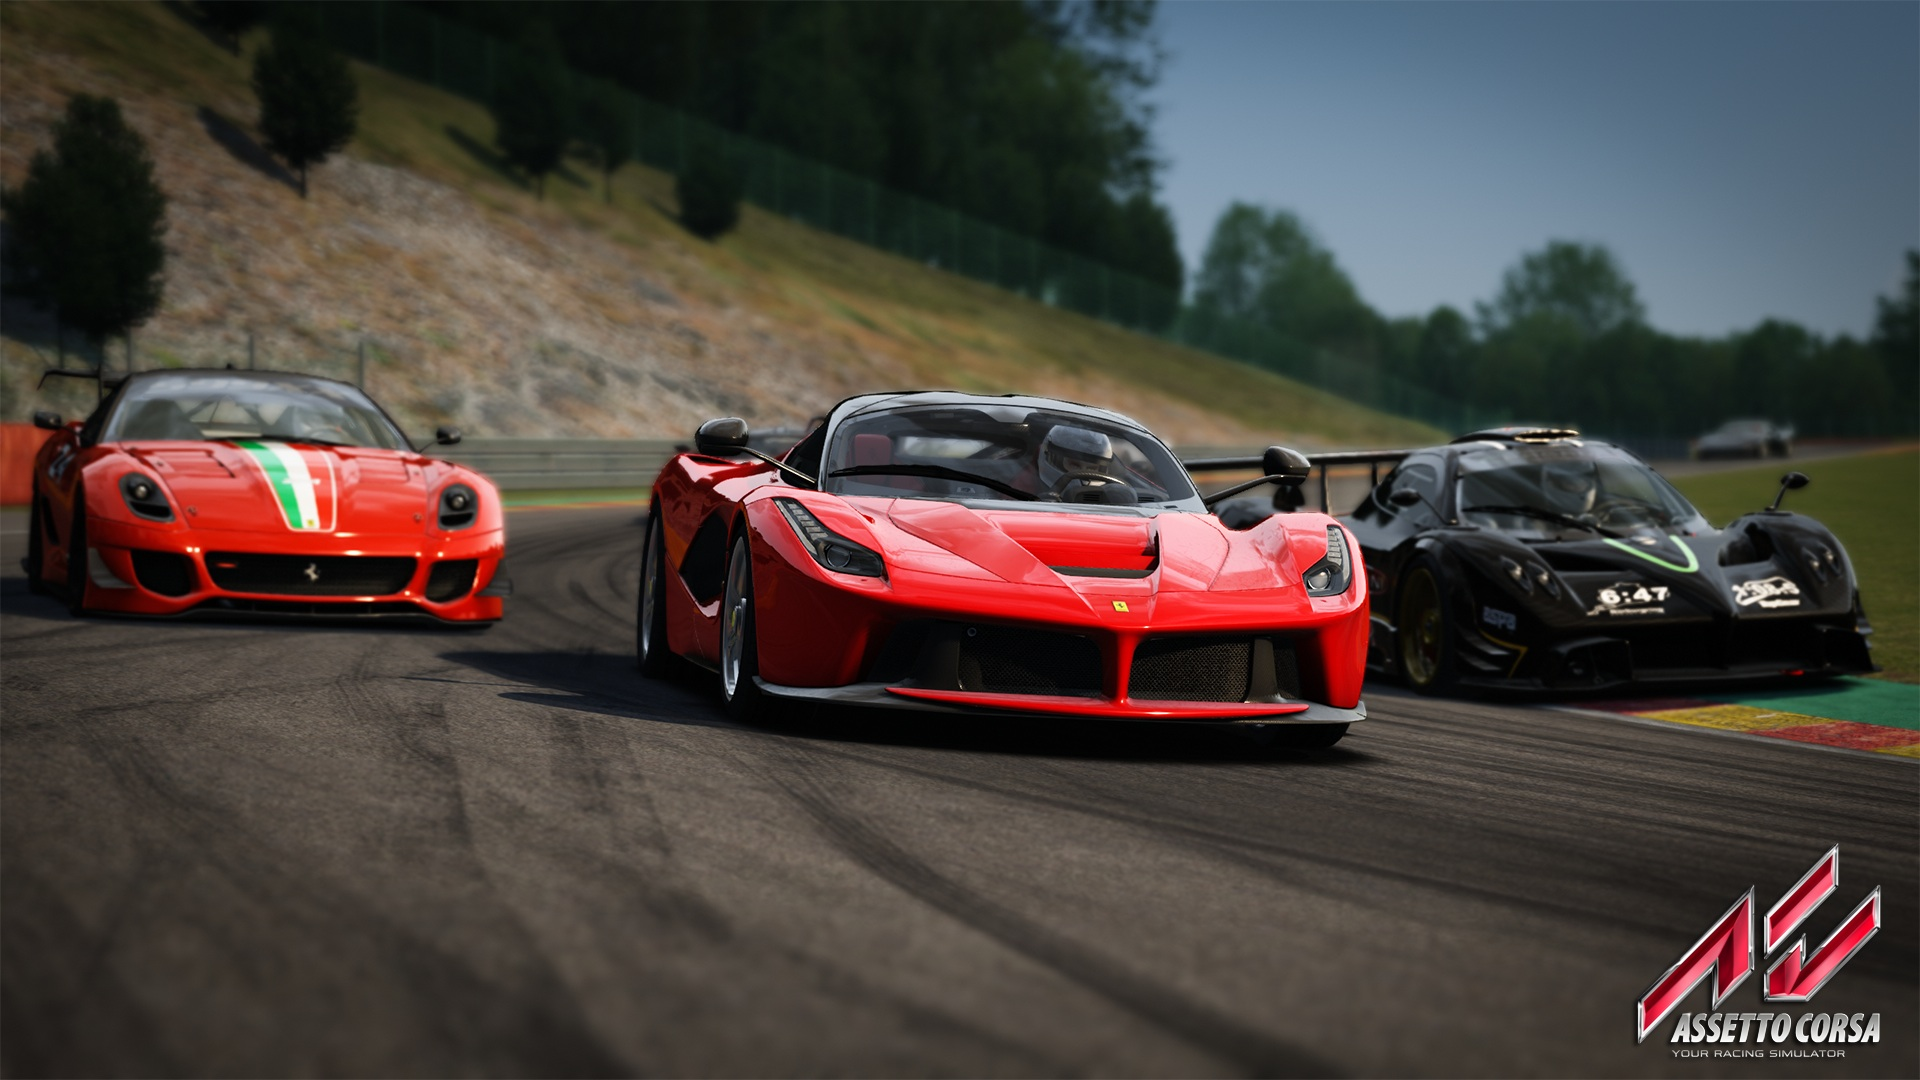 assetto corsa 1 0 is out now assetto corsa. Black Bedroom Furniture Sets. Home Design Ideas